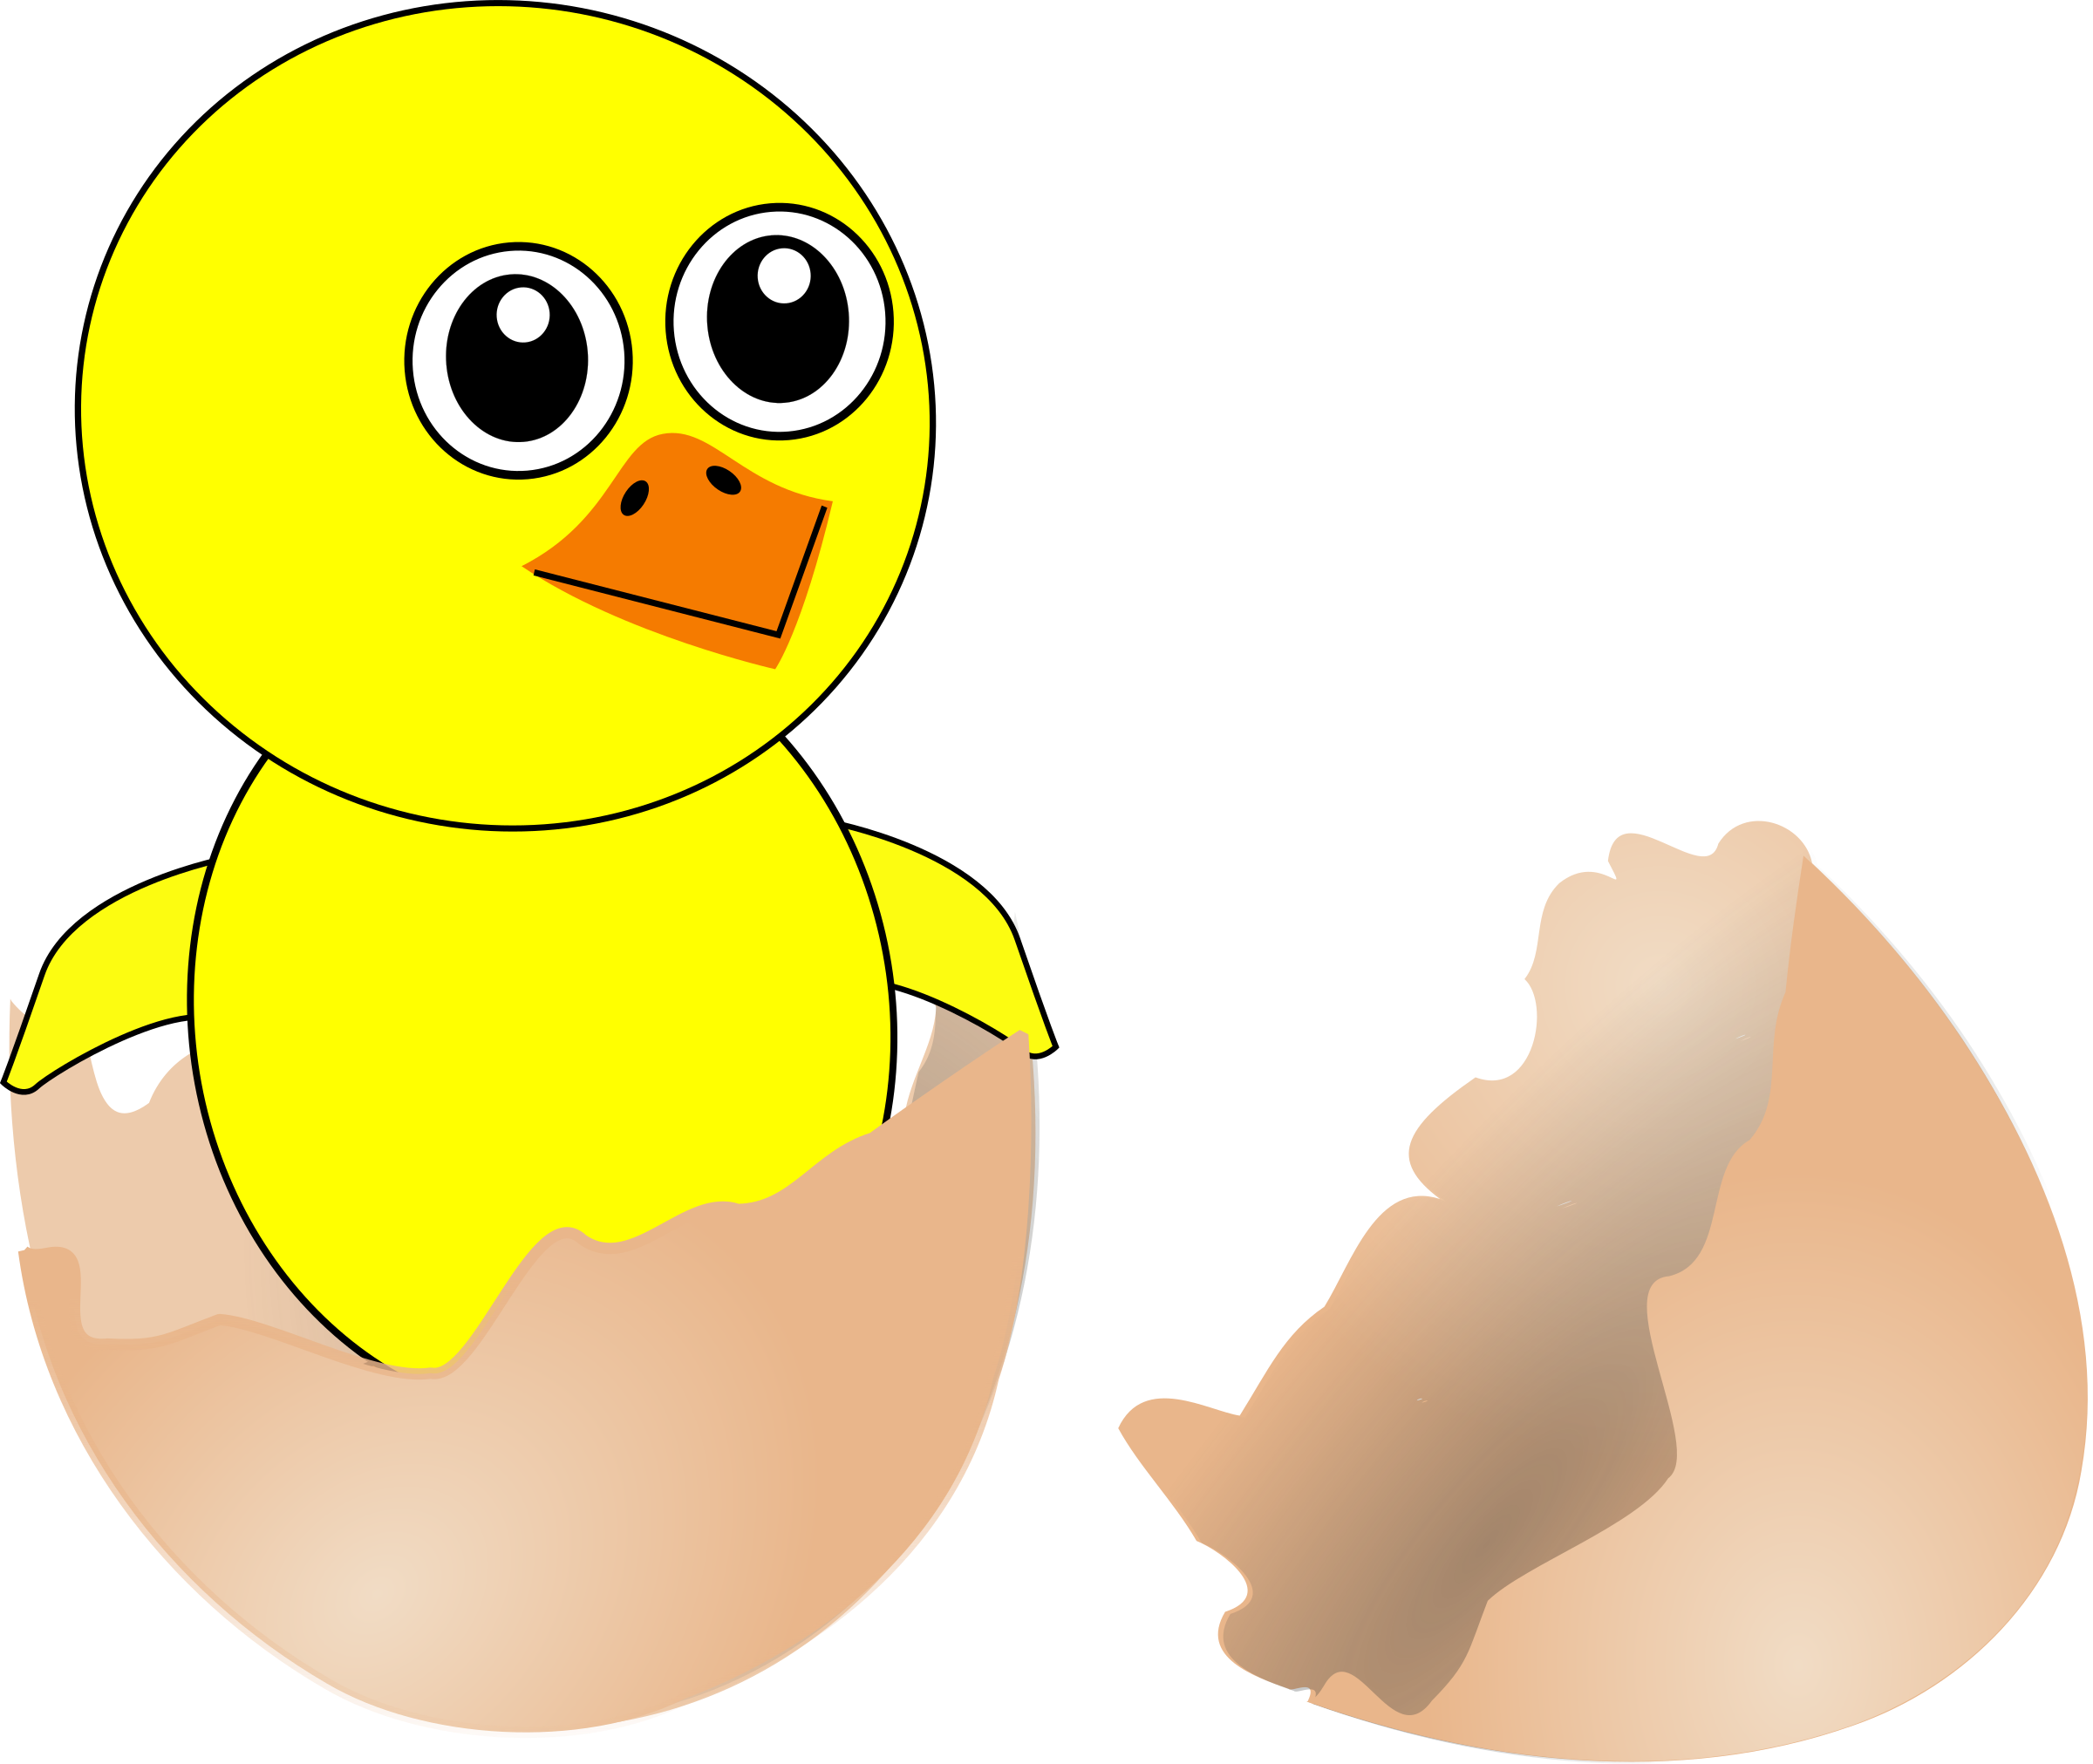 Funny Chick Cartoon Newborn Coming Out from the Egg by palomaironique